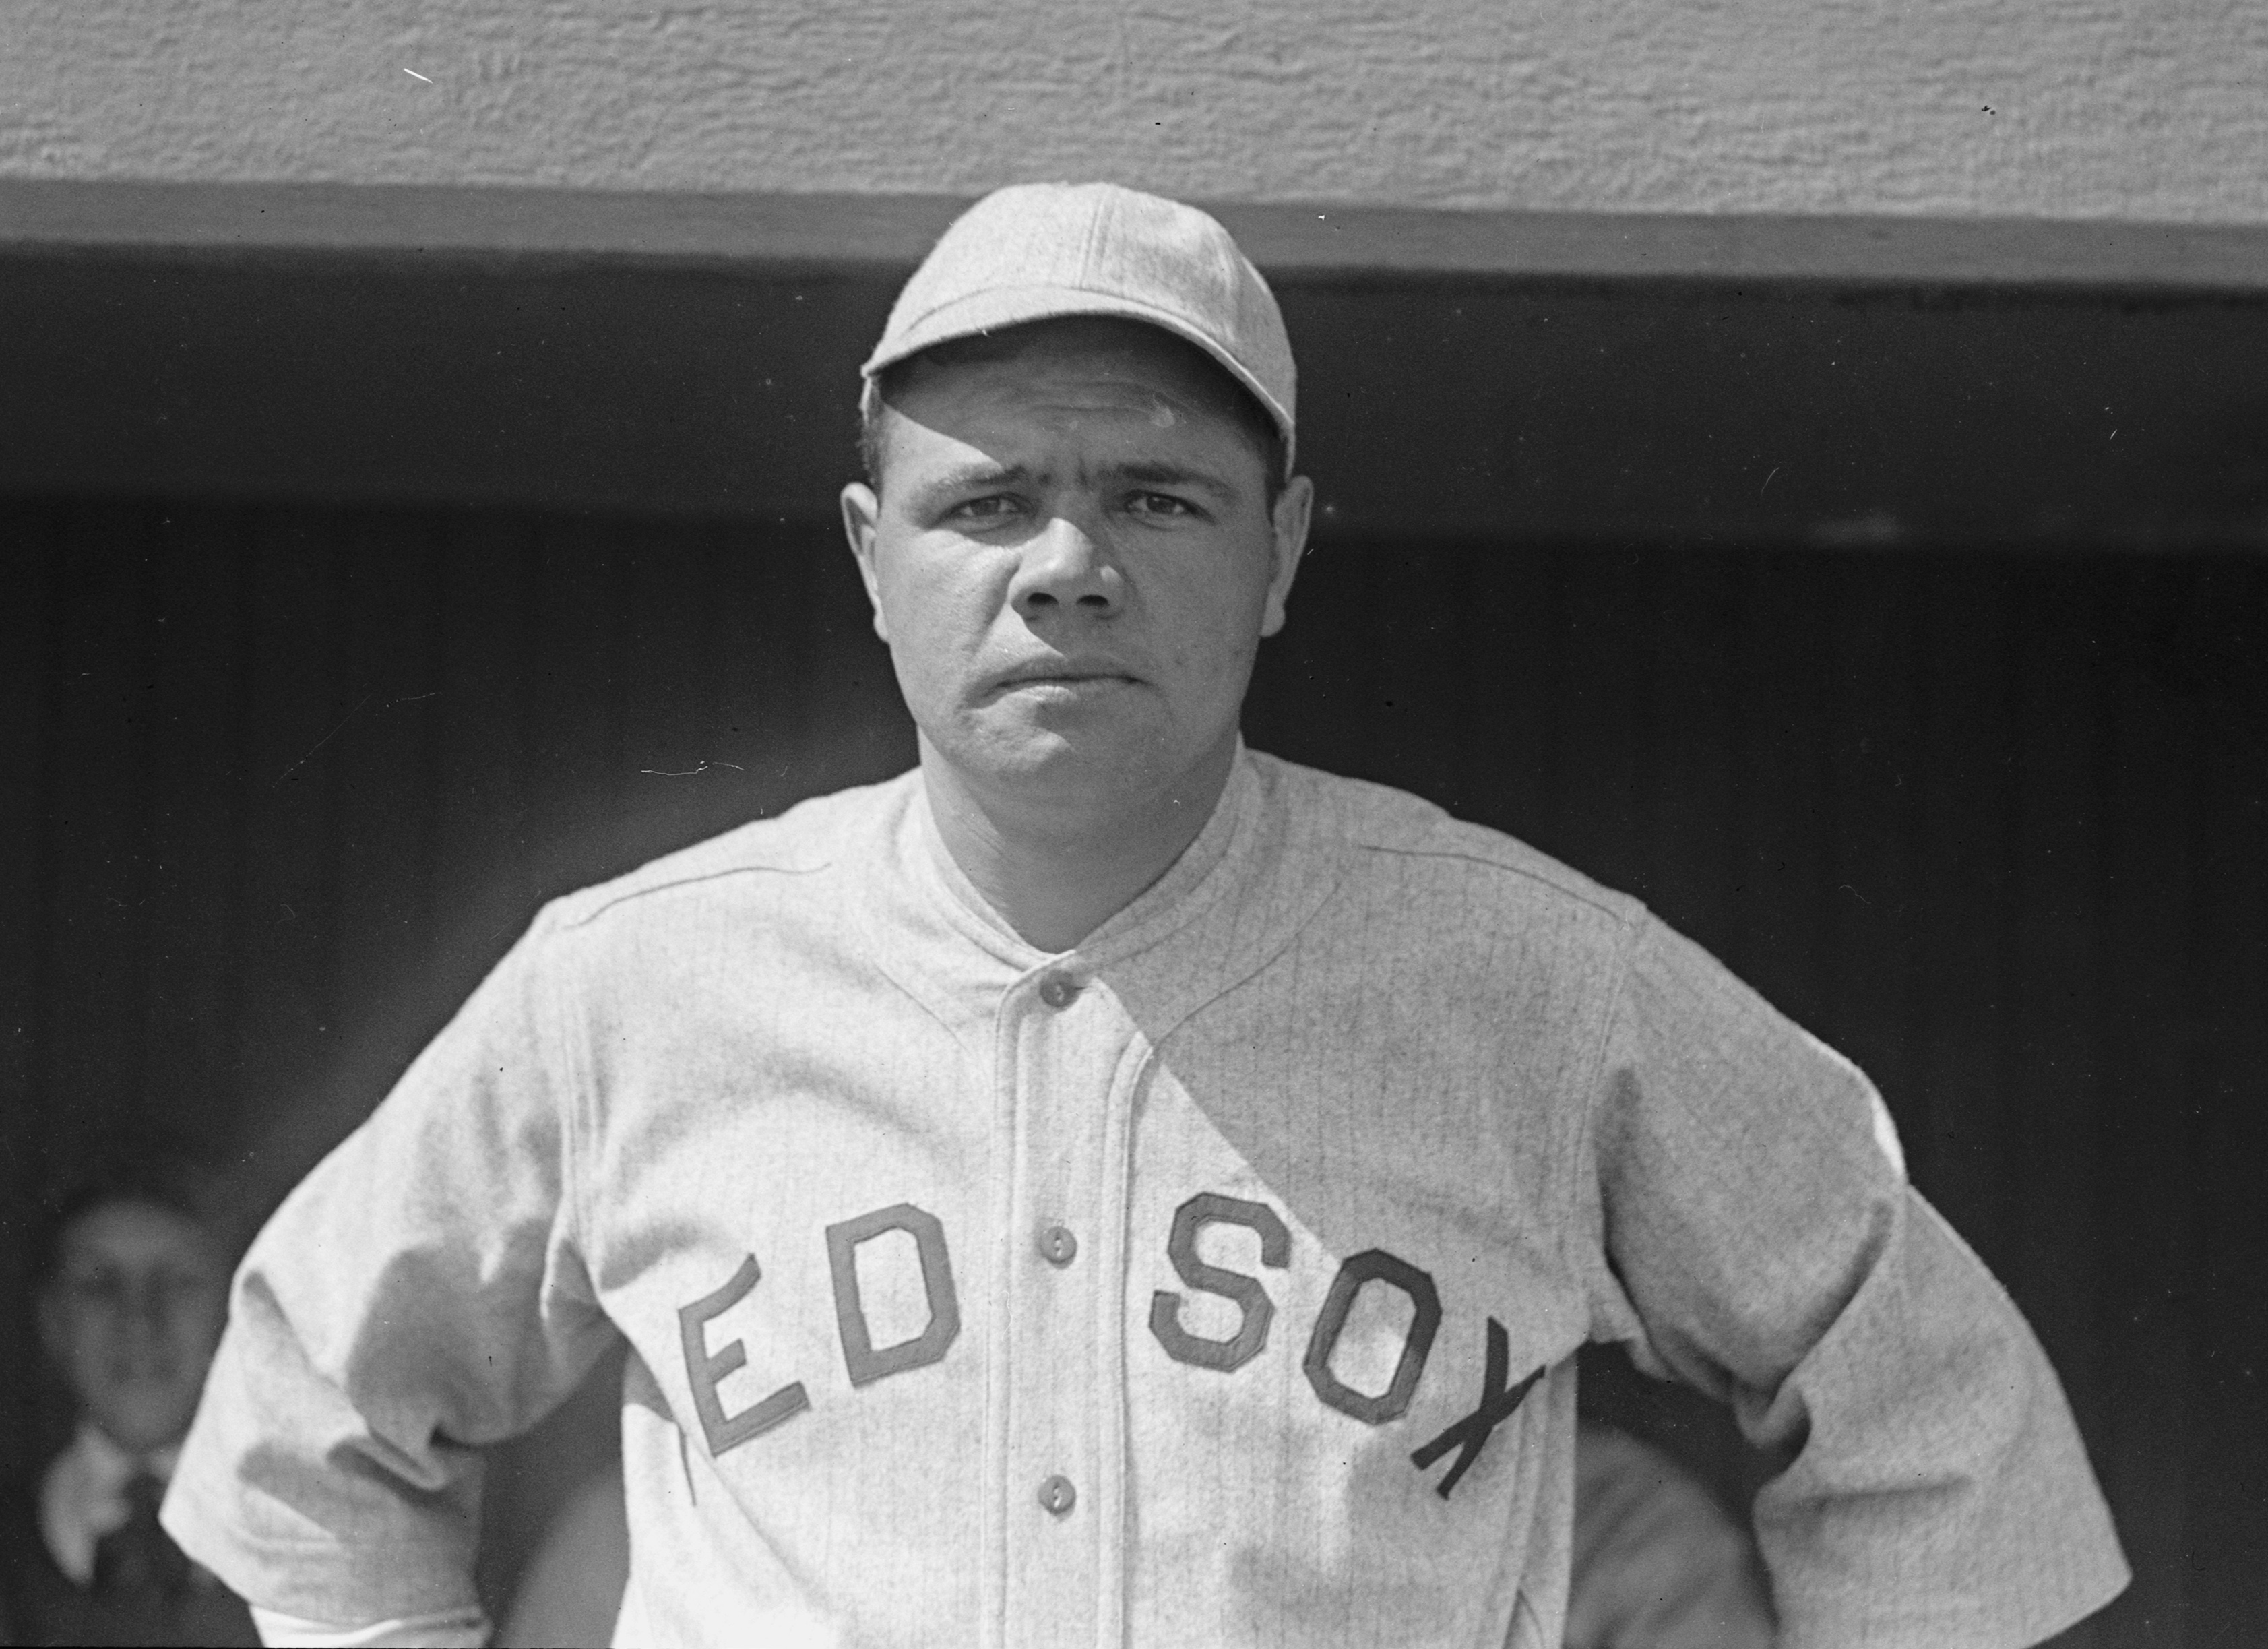 Babe Ruth, publicity photo, 1919, Boston Red Sox